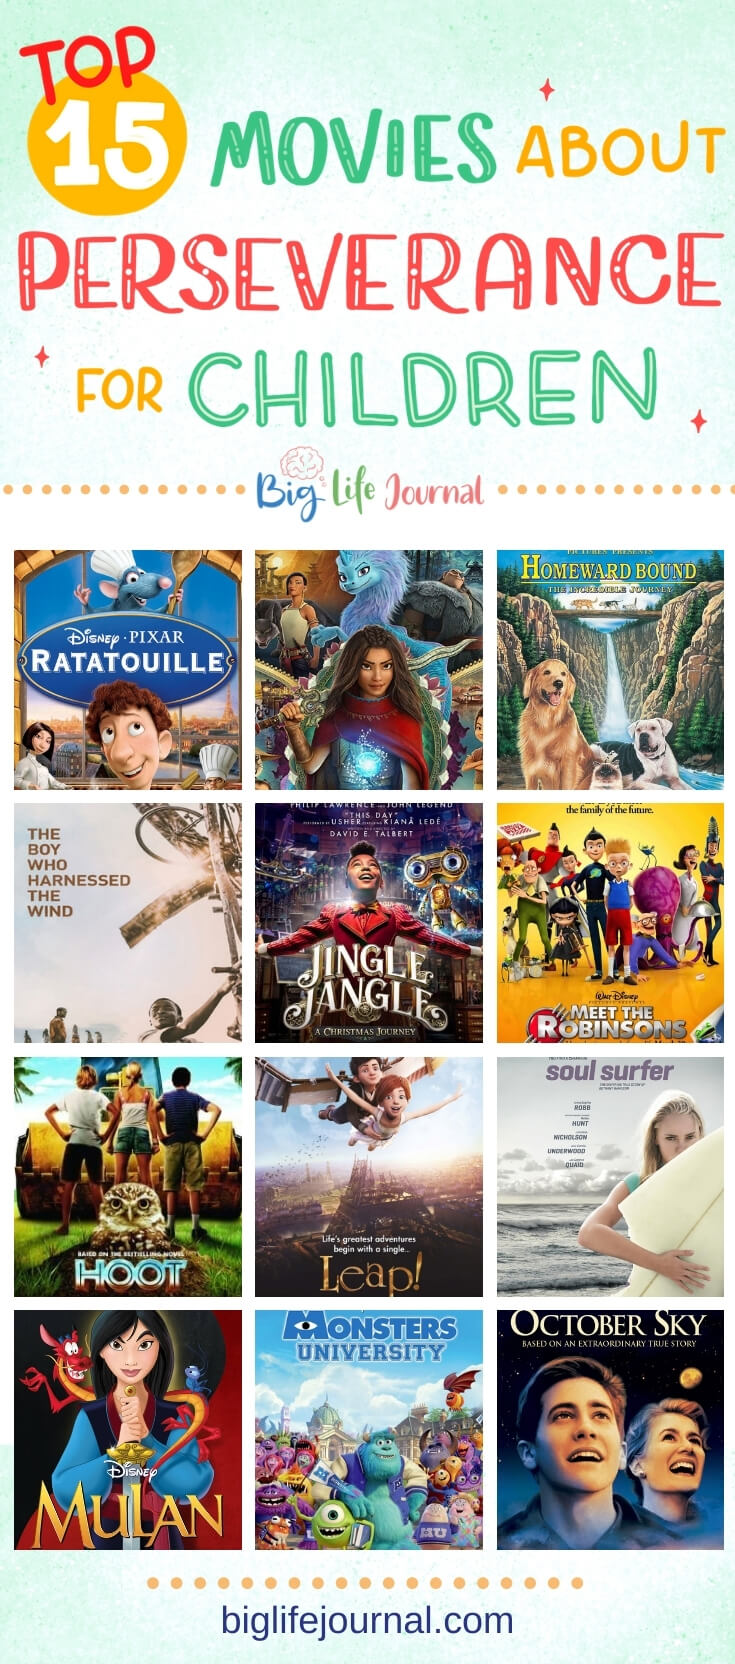 Top 15 Movies About Perseverance for Children